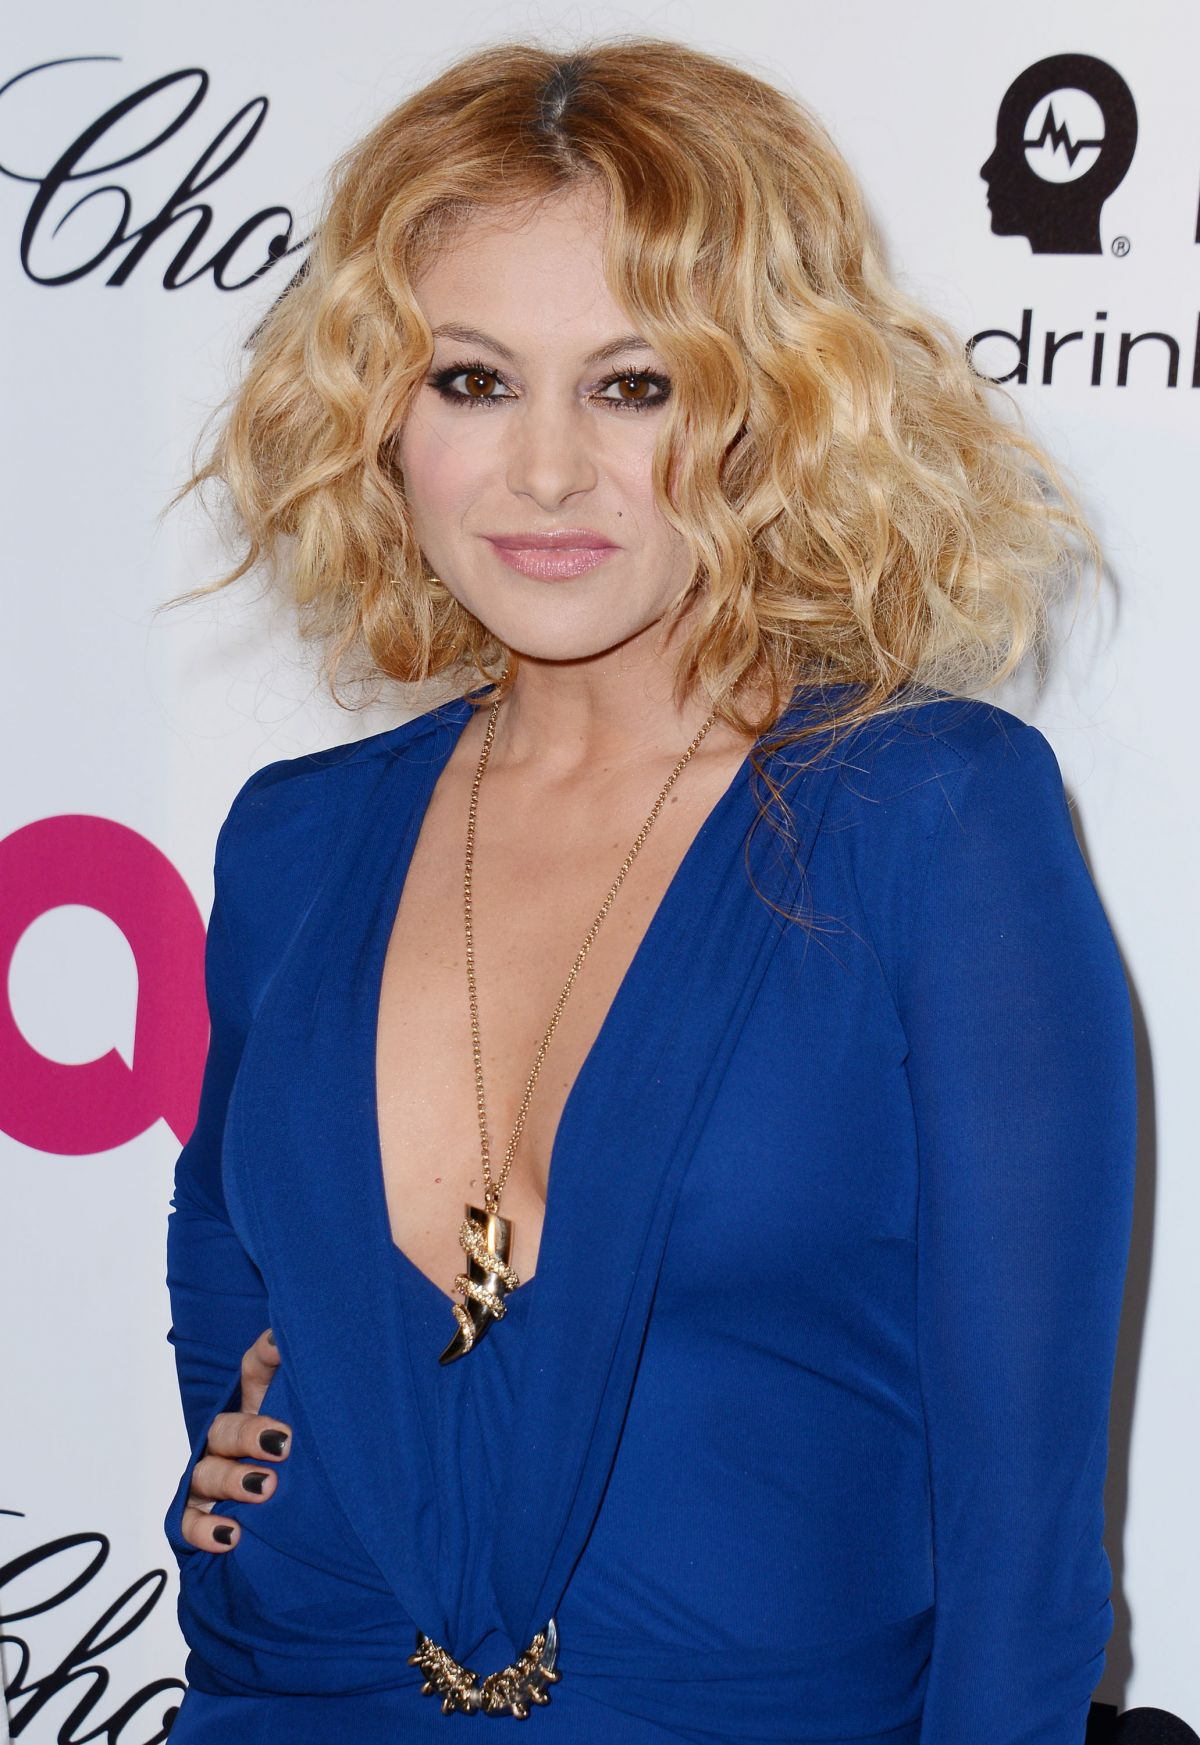 PAULINA RUBIO at Elton John Aids Foundation Oscar Party in Los Angeles